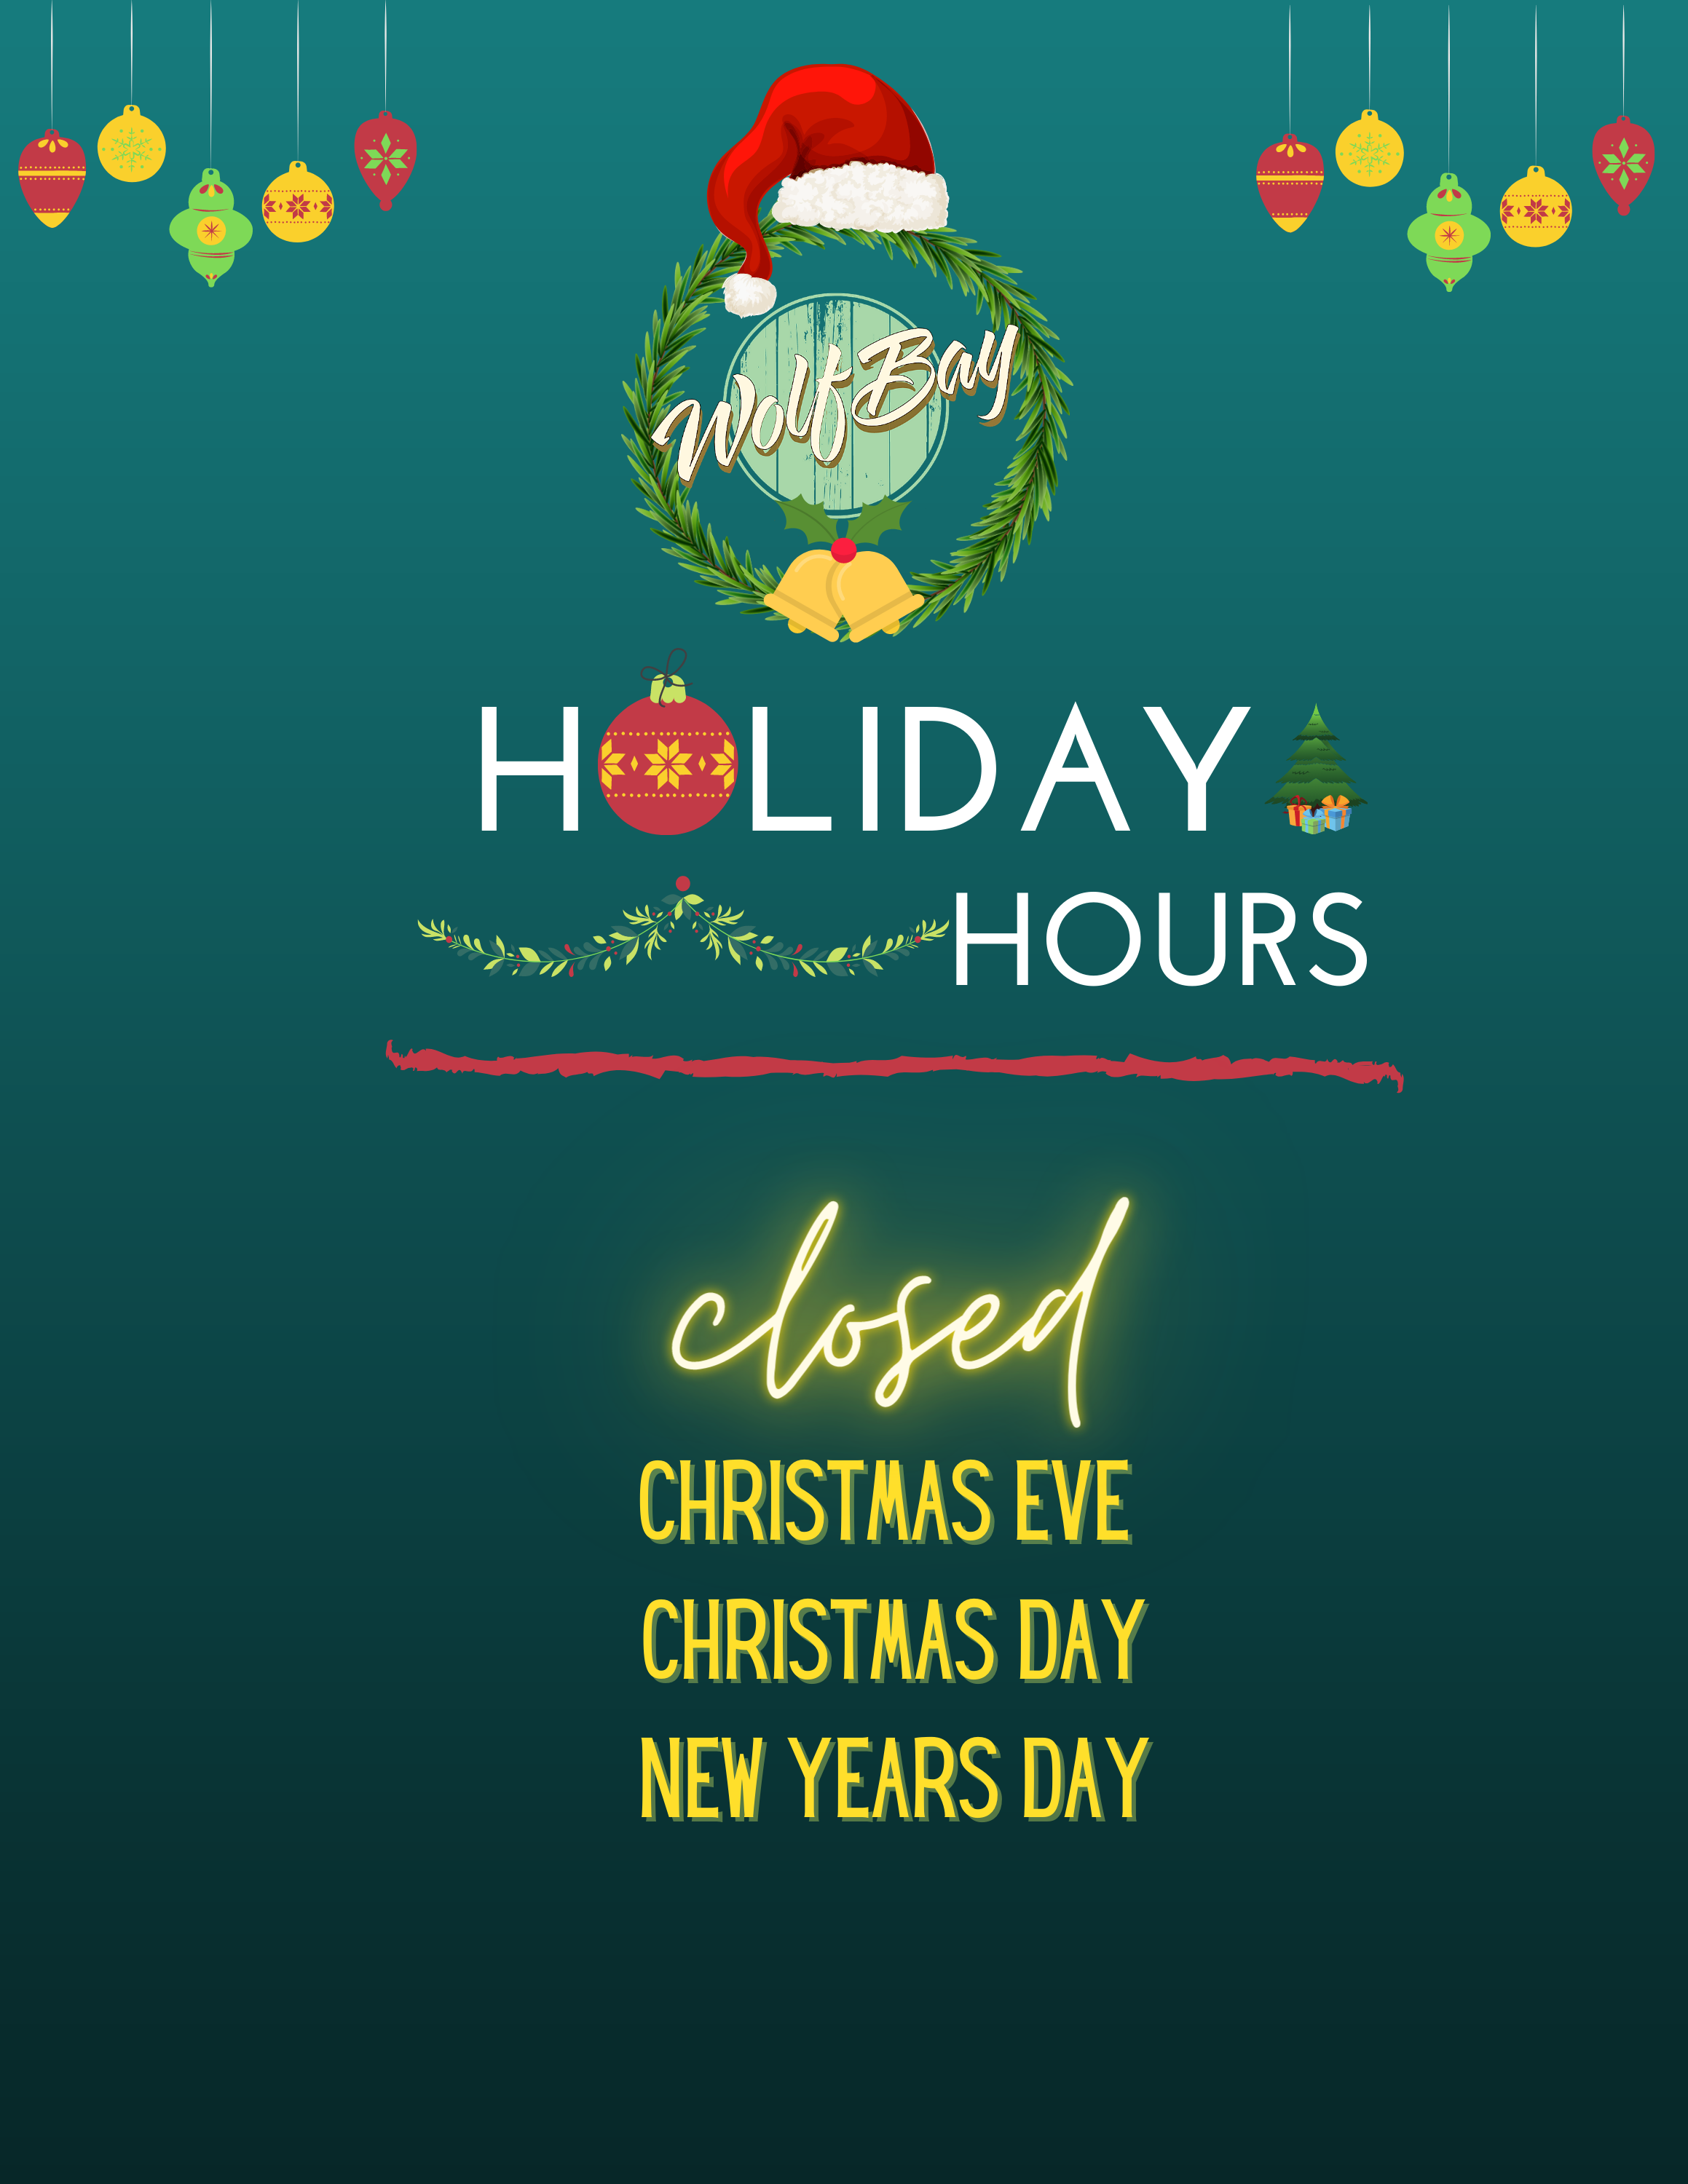 Wolf Bay Holiday Hours